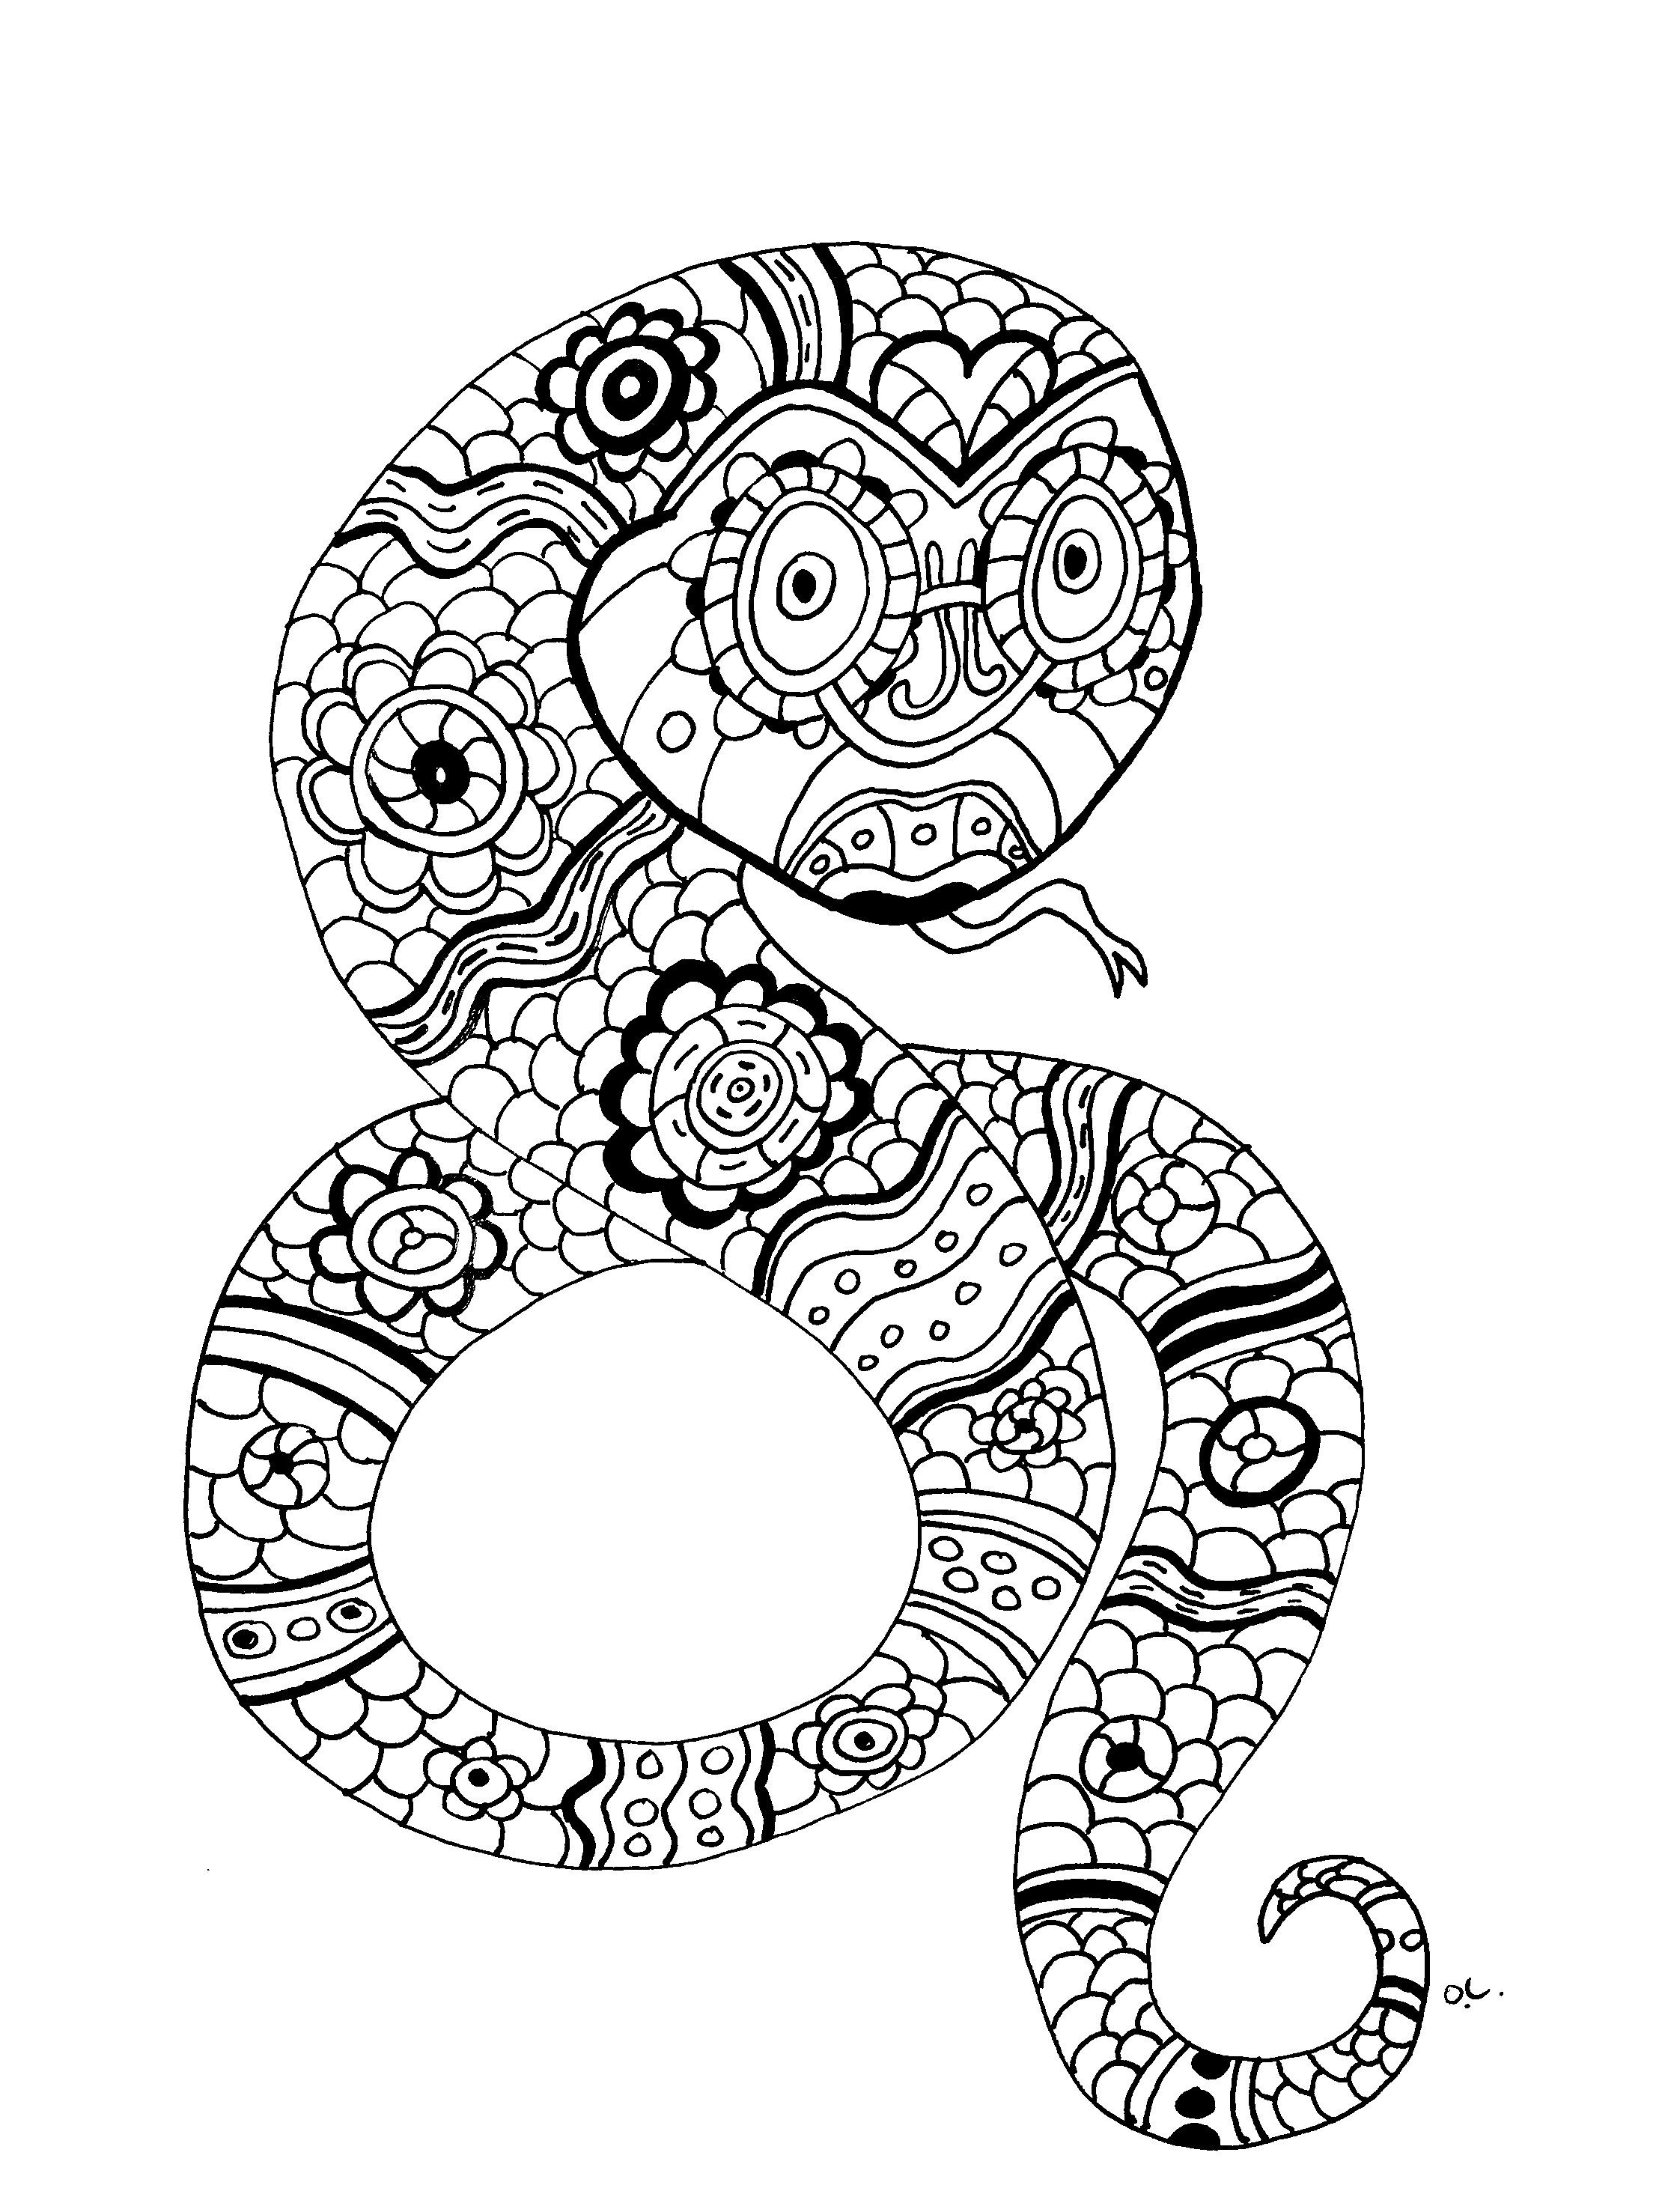 Free coloring page coloring-the-snake-by-oliv. The Snake, original ...